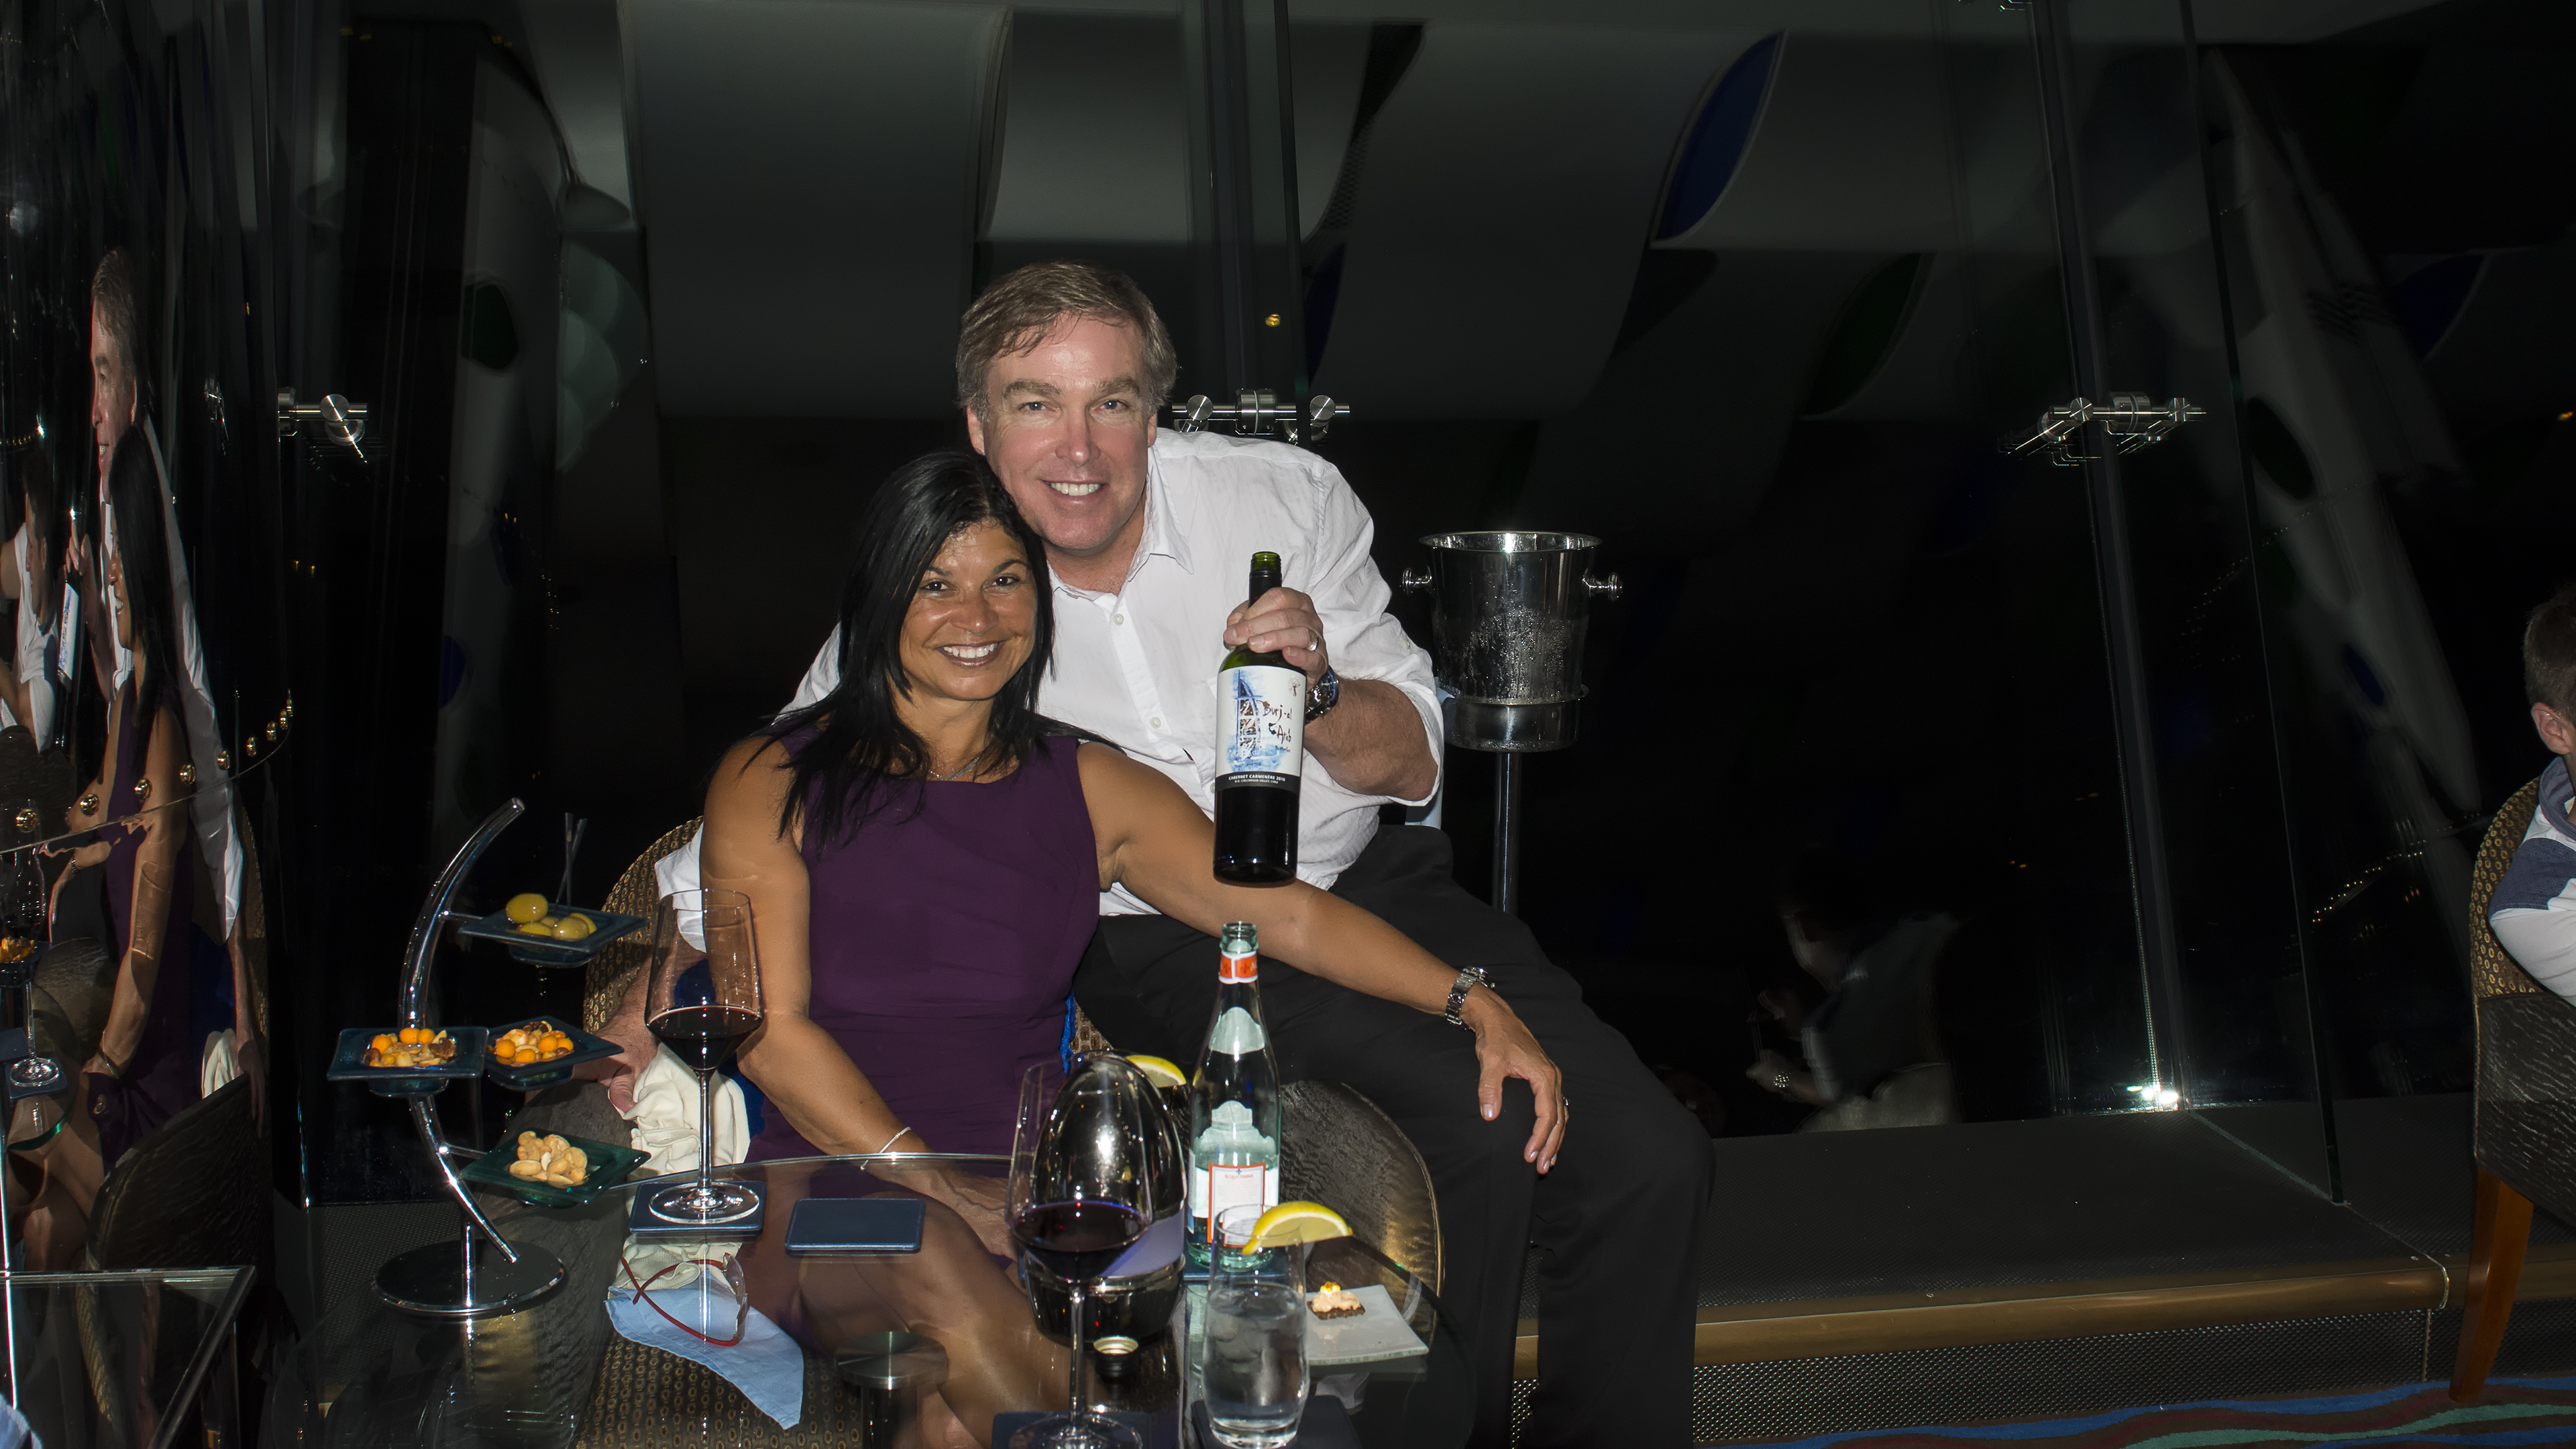 In the Sky Bar at Burj Al Arab